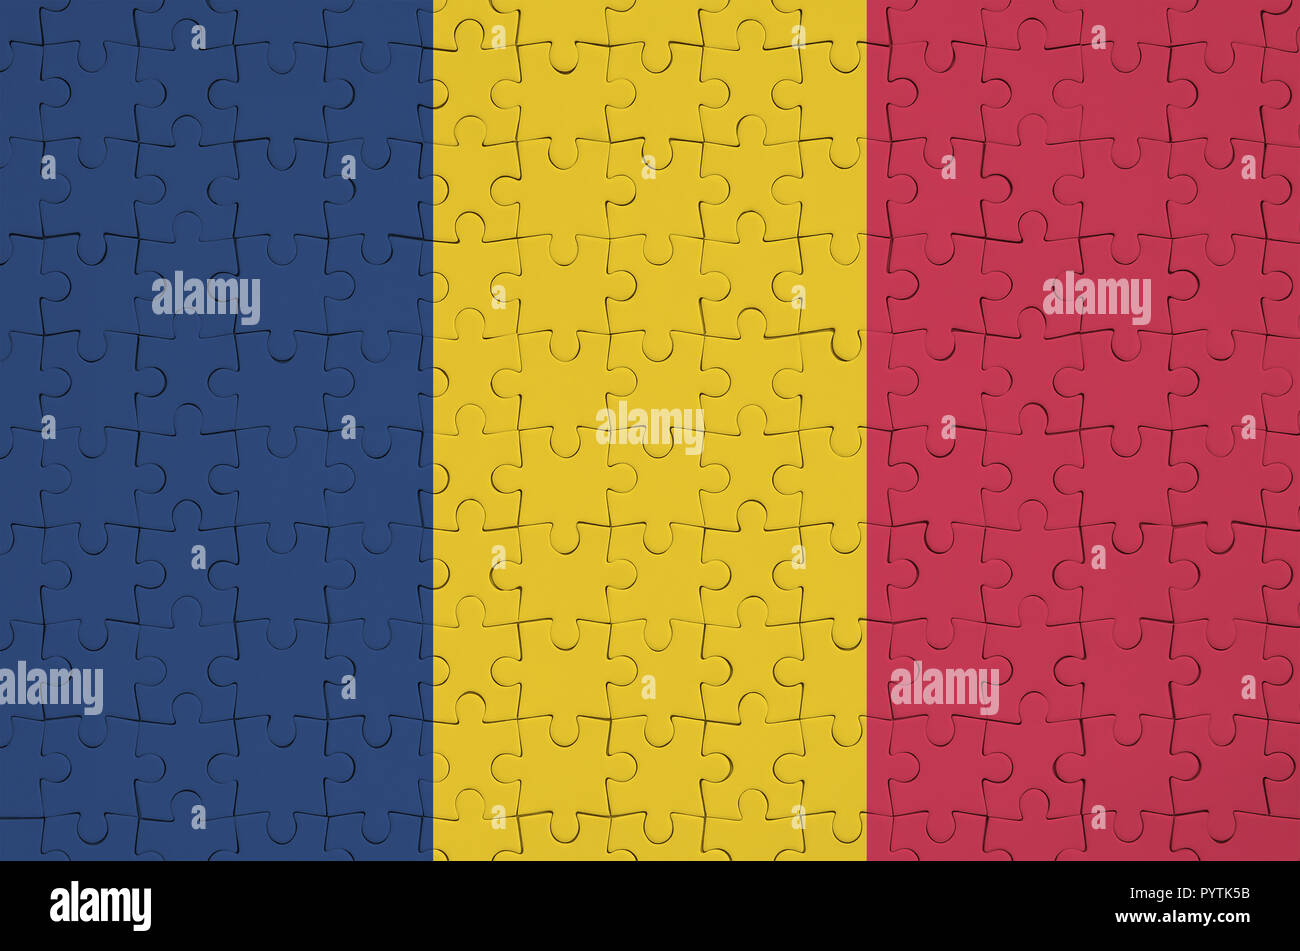 Chad flag  is depicted on a folded puzzle - Stock Image